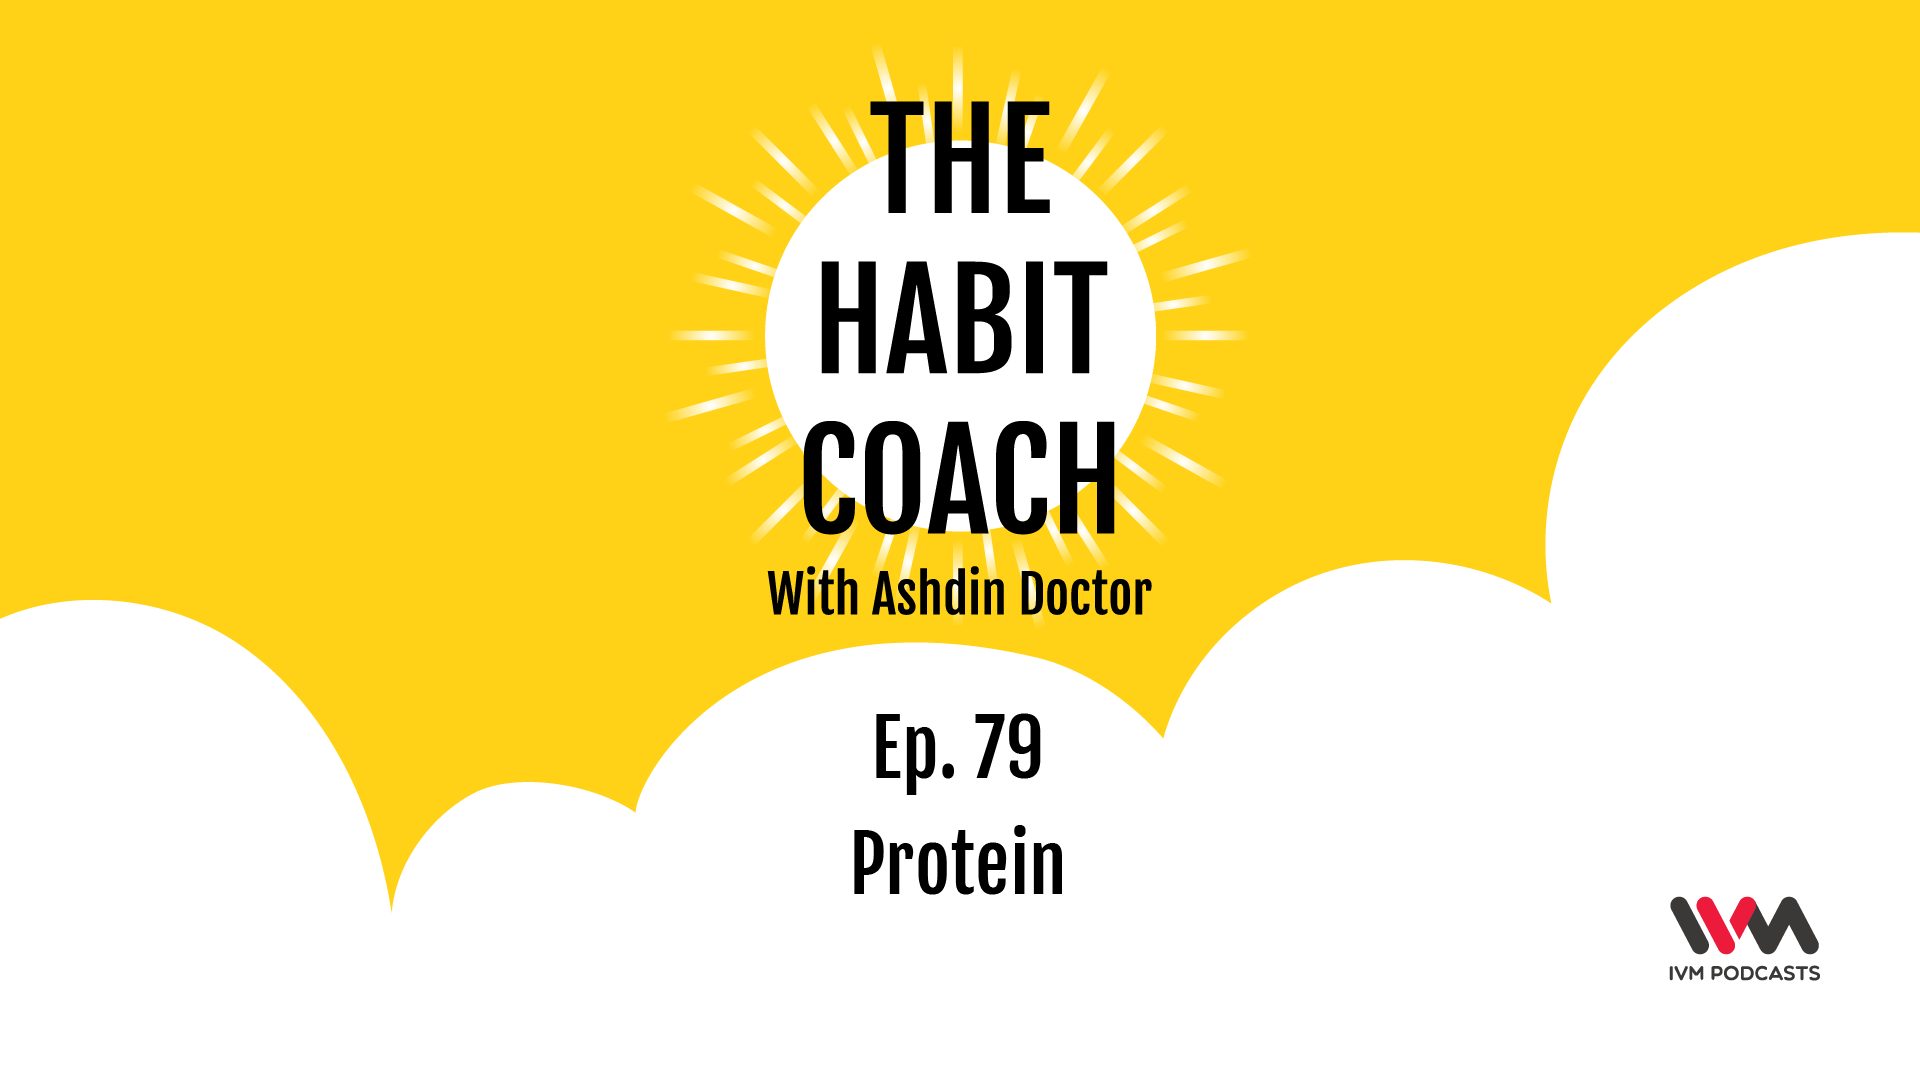 TheHabitCoachEpisode79.png